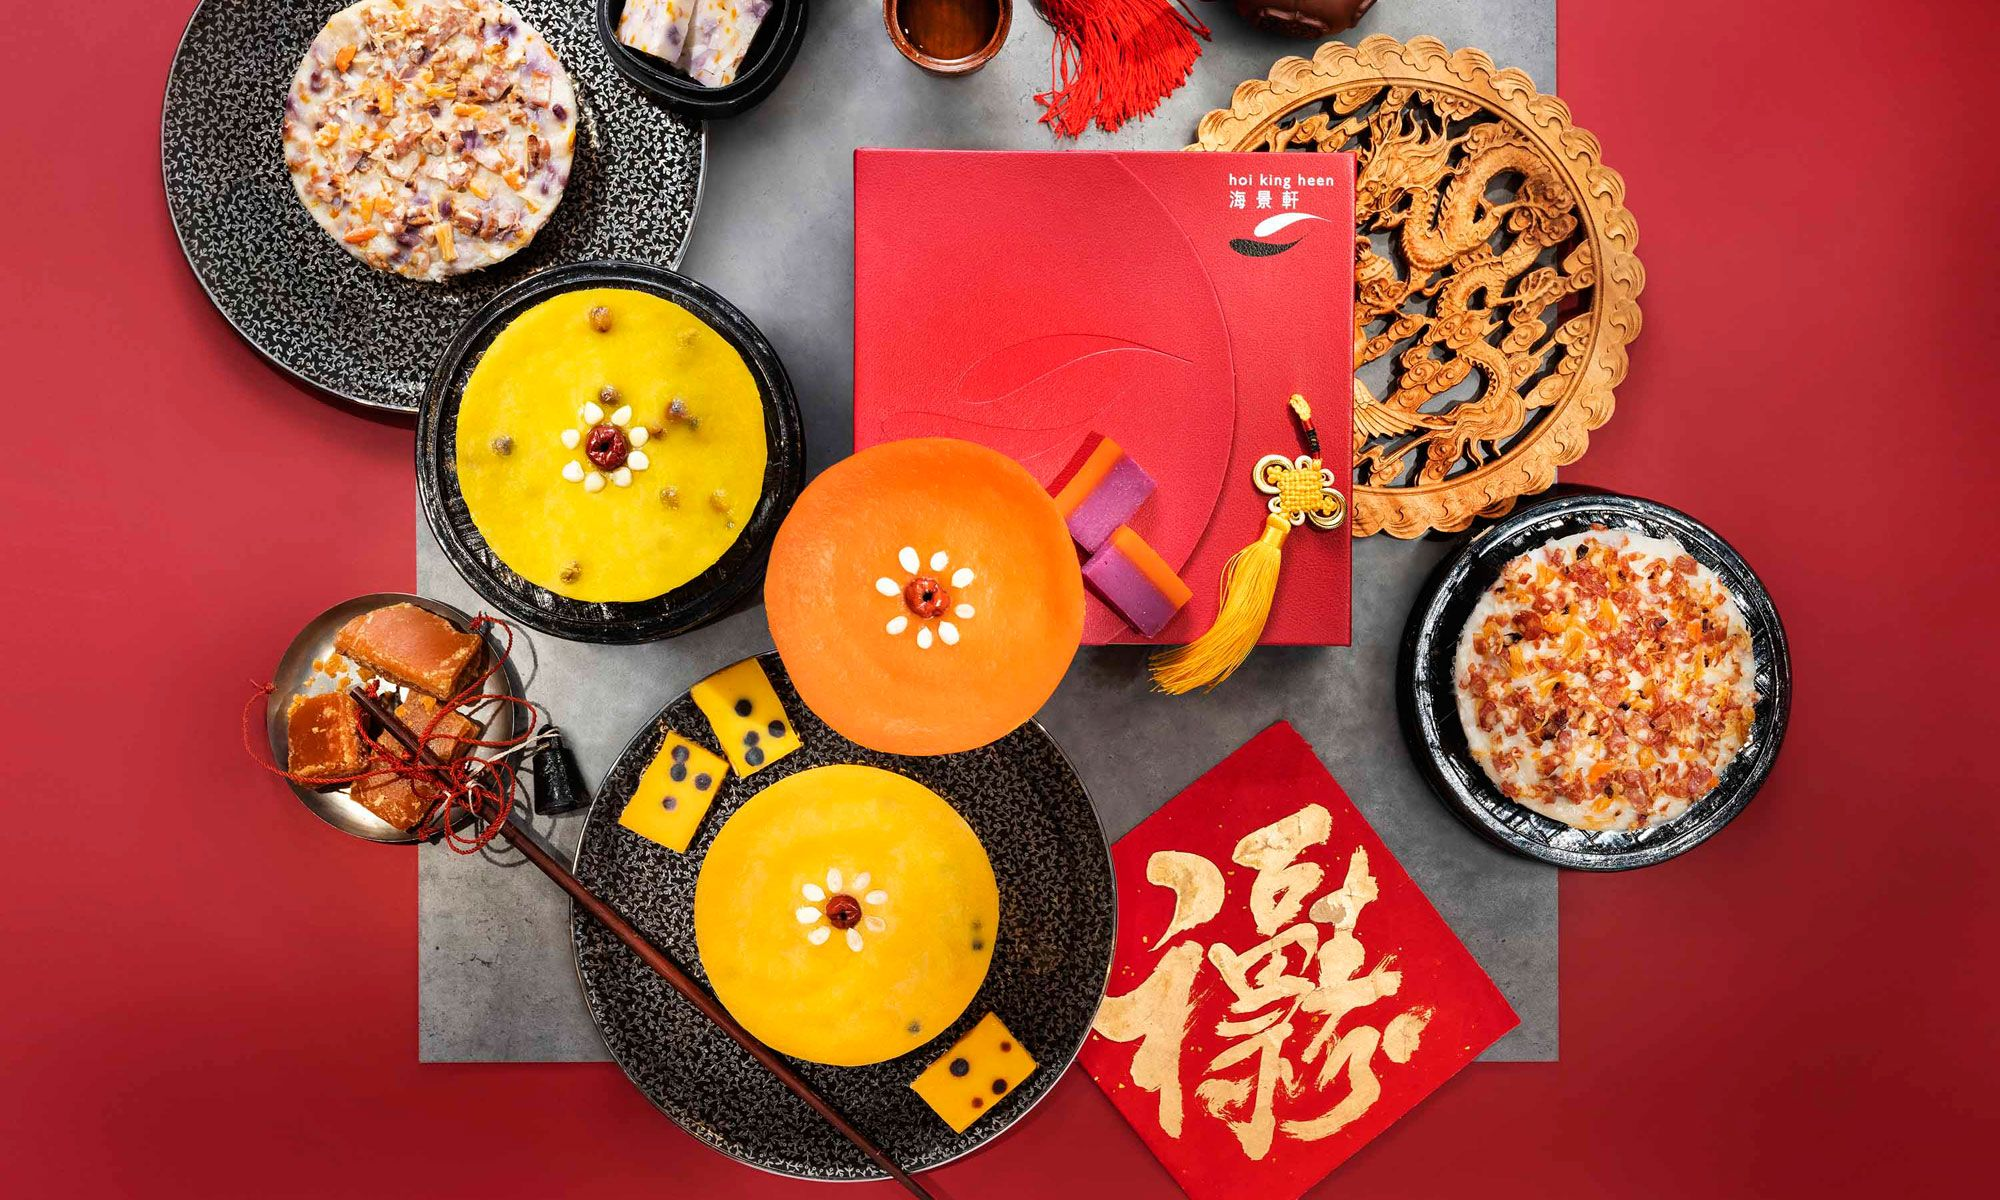 Hoi King Heen Presents A Series Of Limited Edition Chinese New Year Puddings